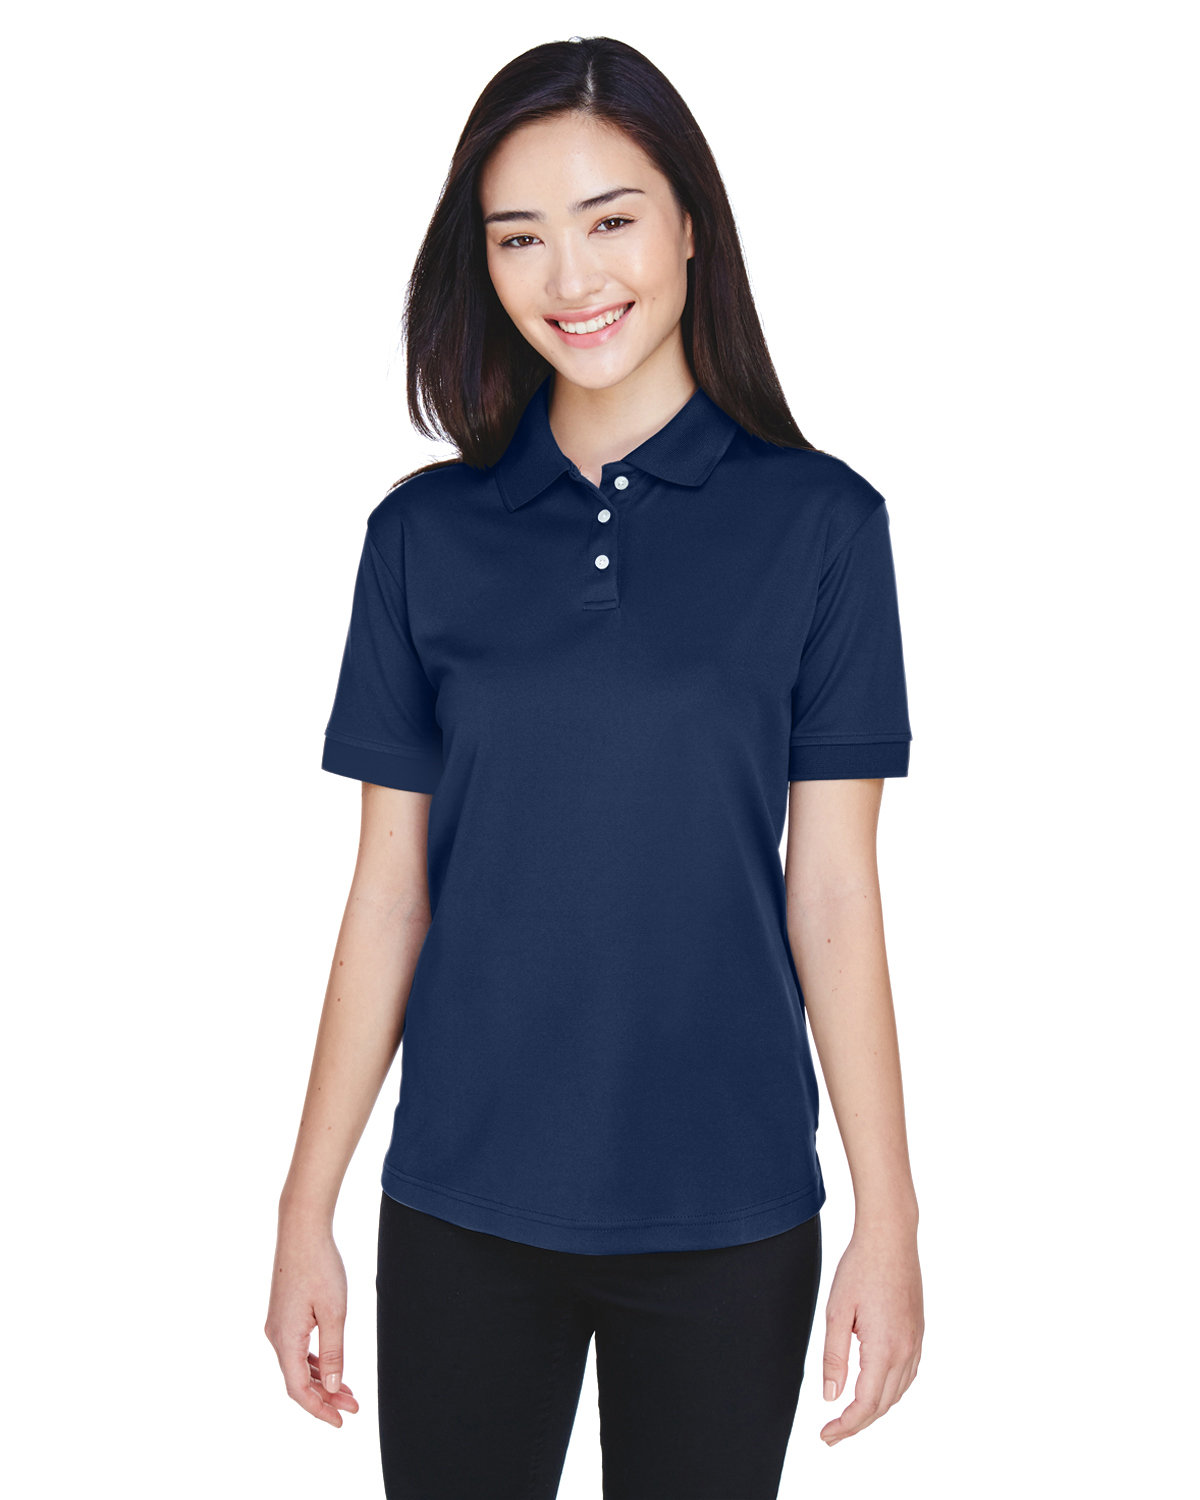 UltraClub Ladies' Platinum Performance Piqué Polo with TempControl Technology NAVY